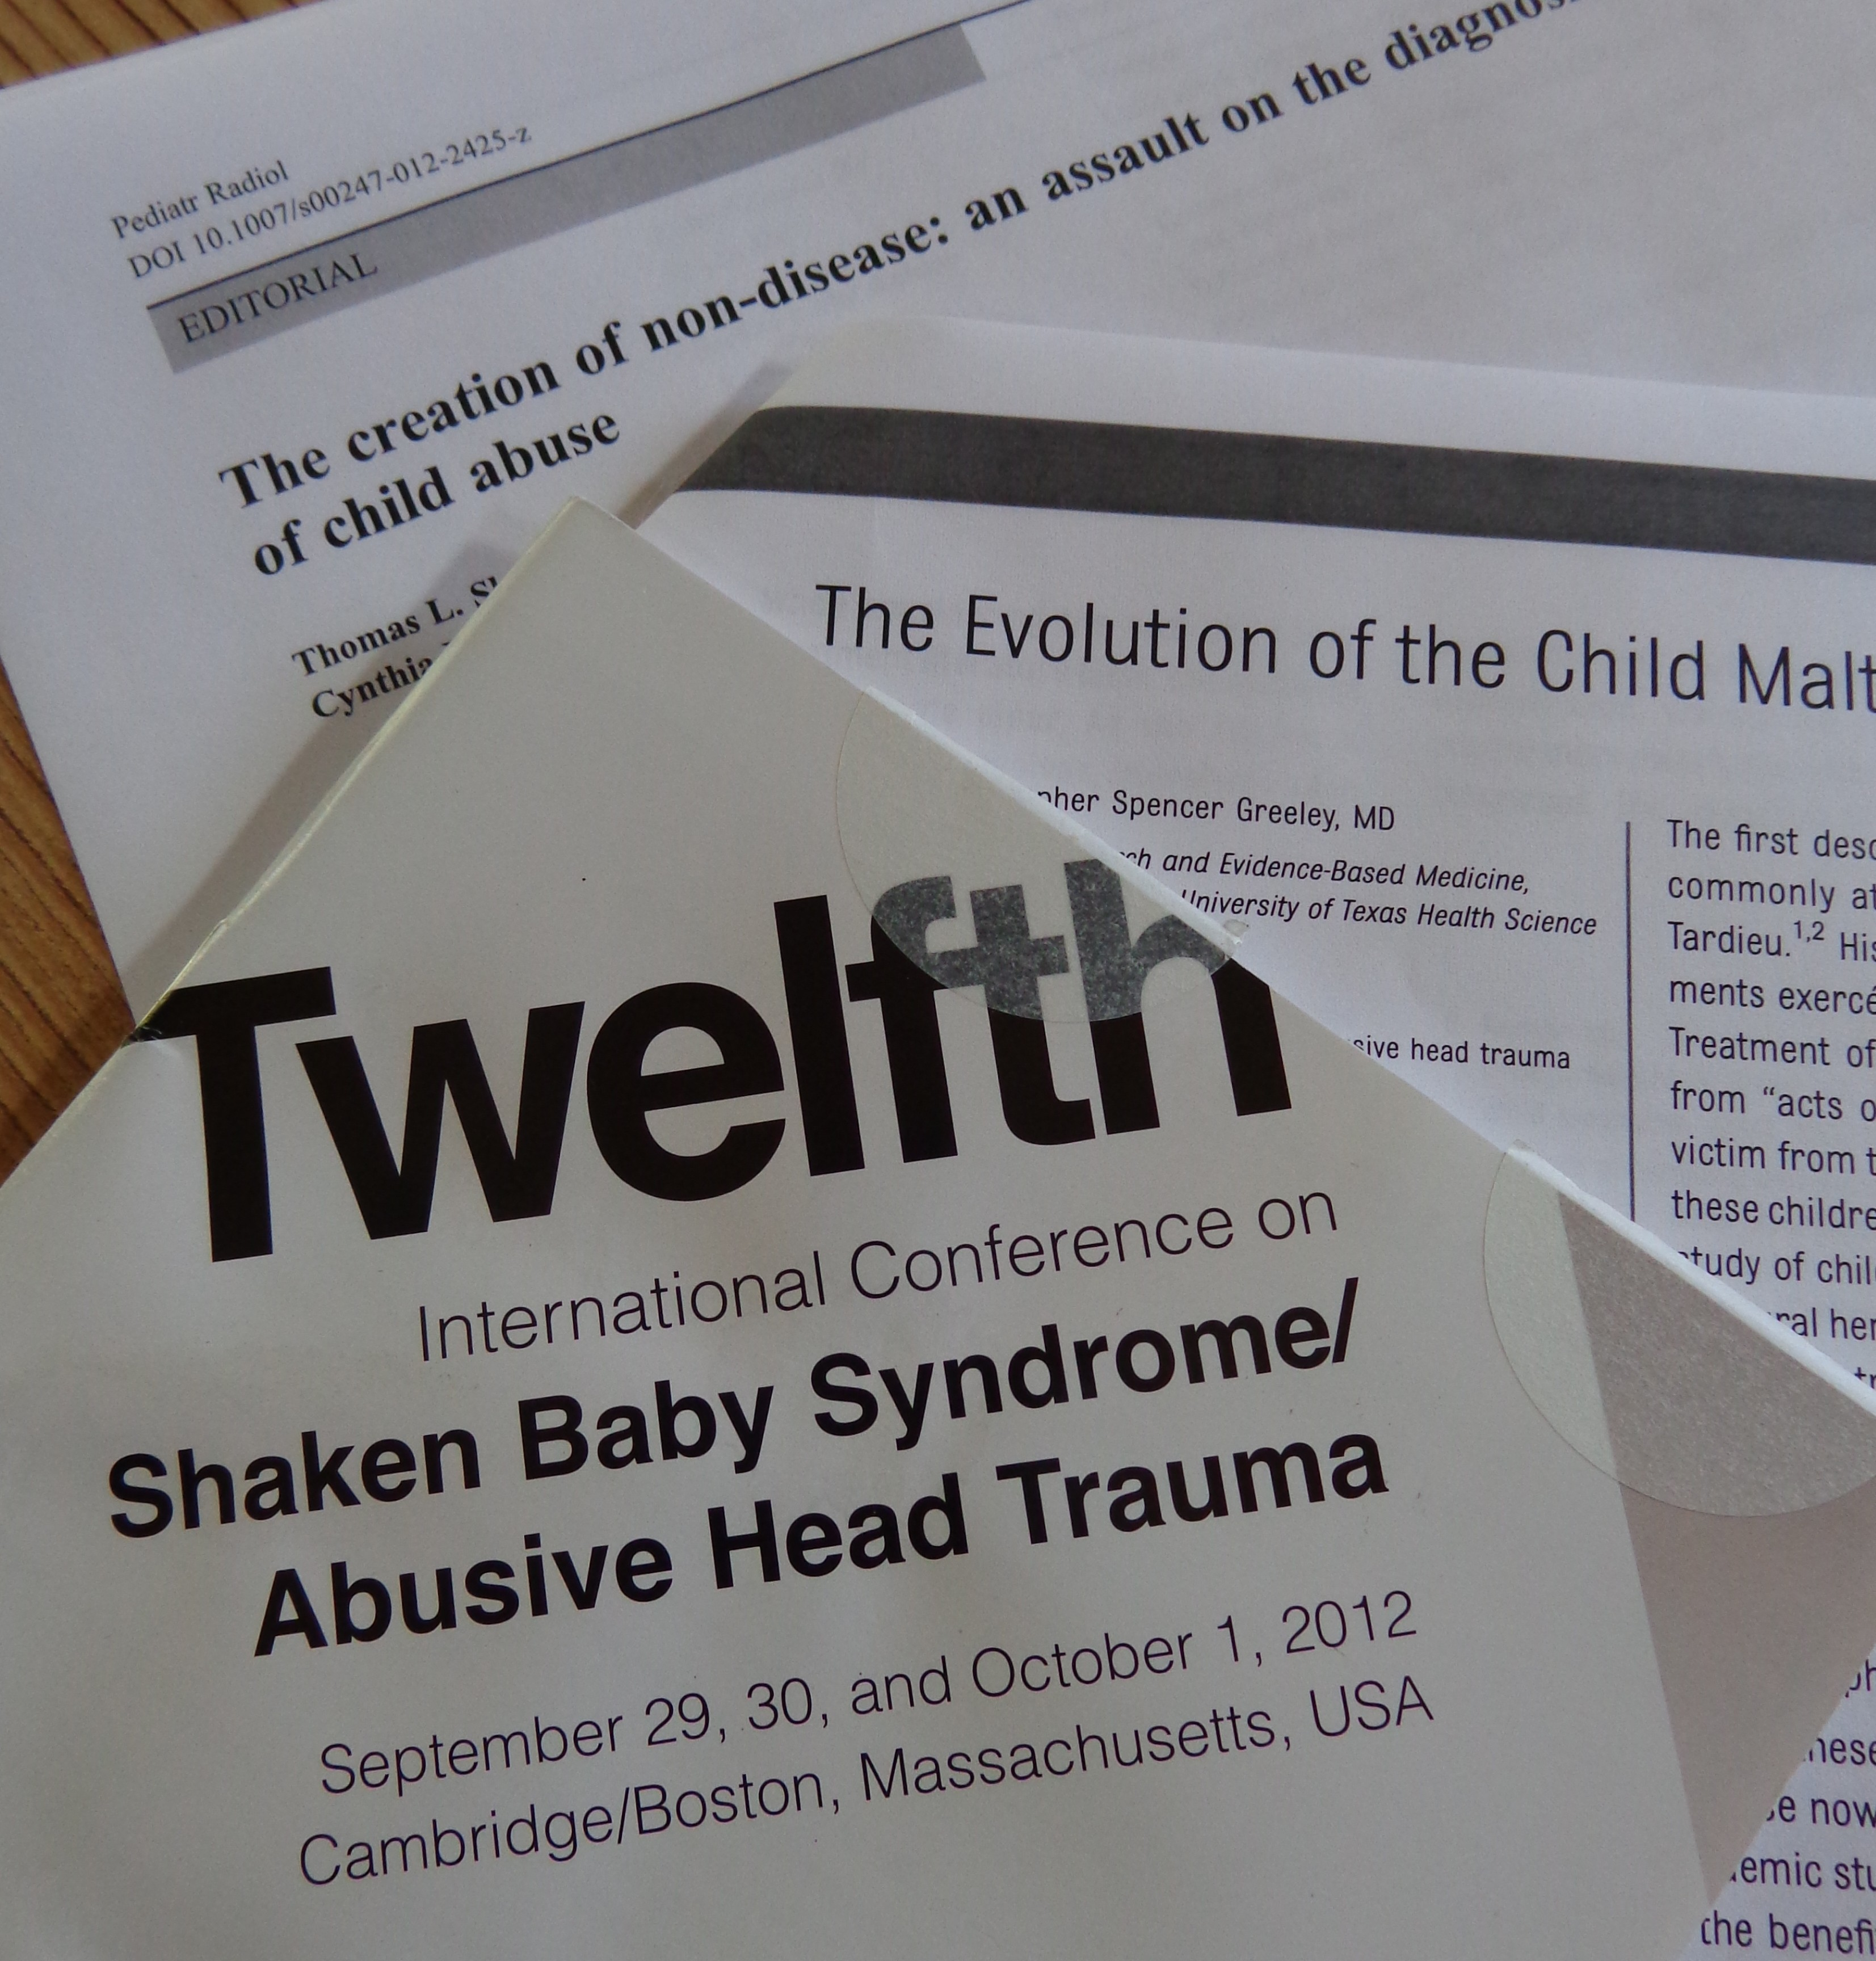 shaken baby syndrome 2 essay Shaken baby syndrome is a simple descriptive for a disturbing cluster of subdural and subarachnoid hemorrhage, traction type metaphyseal fractures, and retinal hemorrhage seen in children due to the act of violently shaking the child (miehl, 2005.